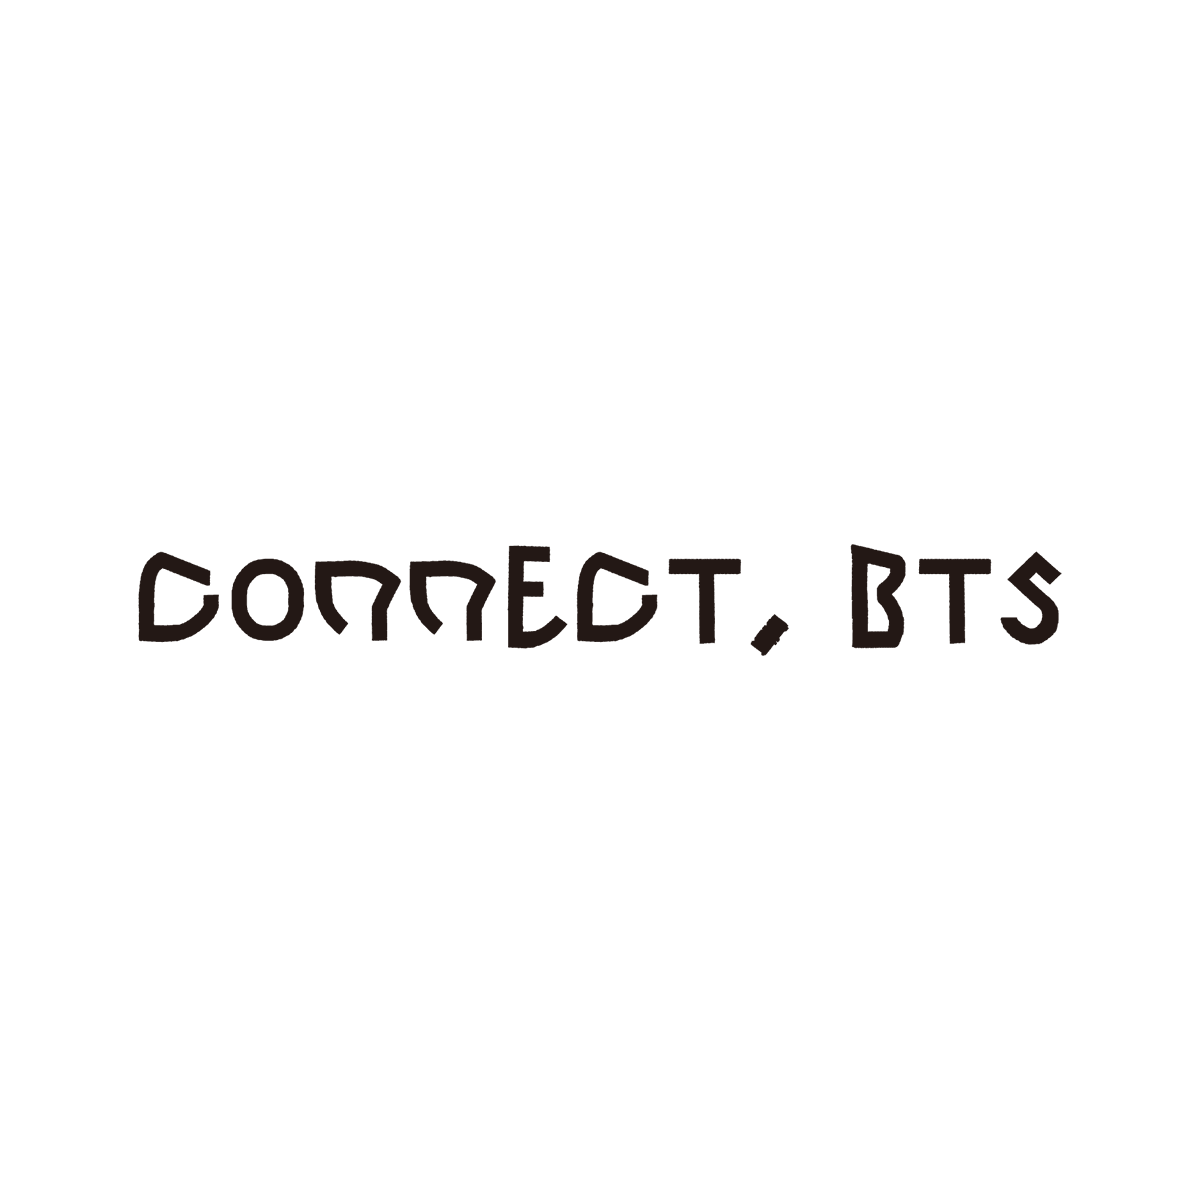 CONNECT, BTS 지금 시작합니다.    #LONDON #BERLIN #BUENOSAIRES #SEOUL #NEWYORKCITY #CONNECT_BTS